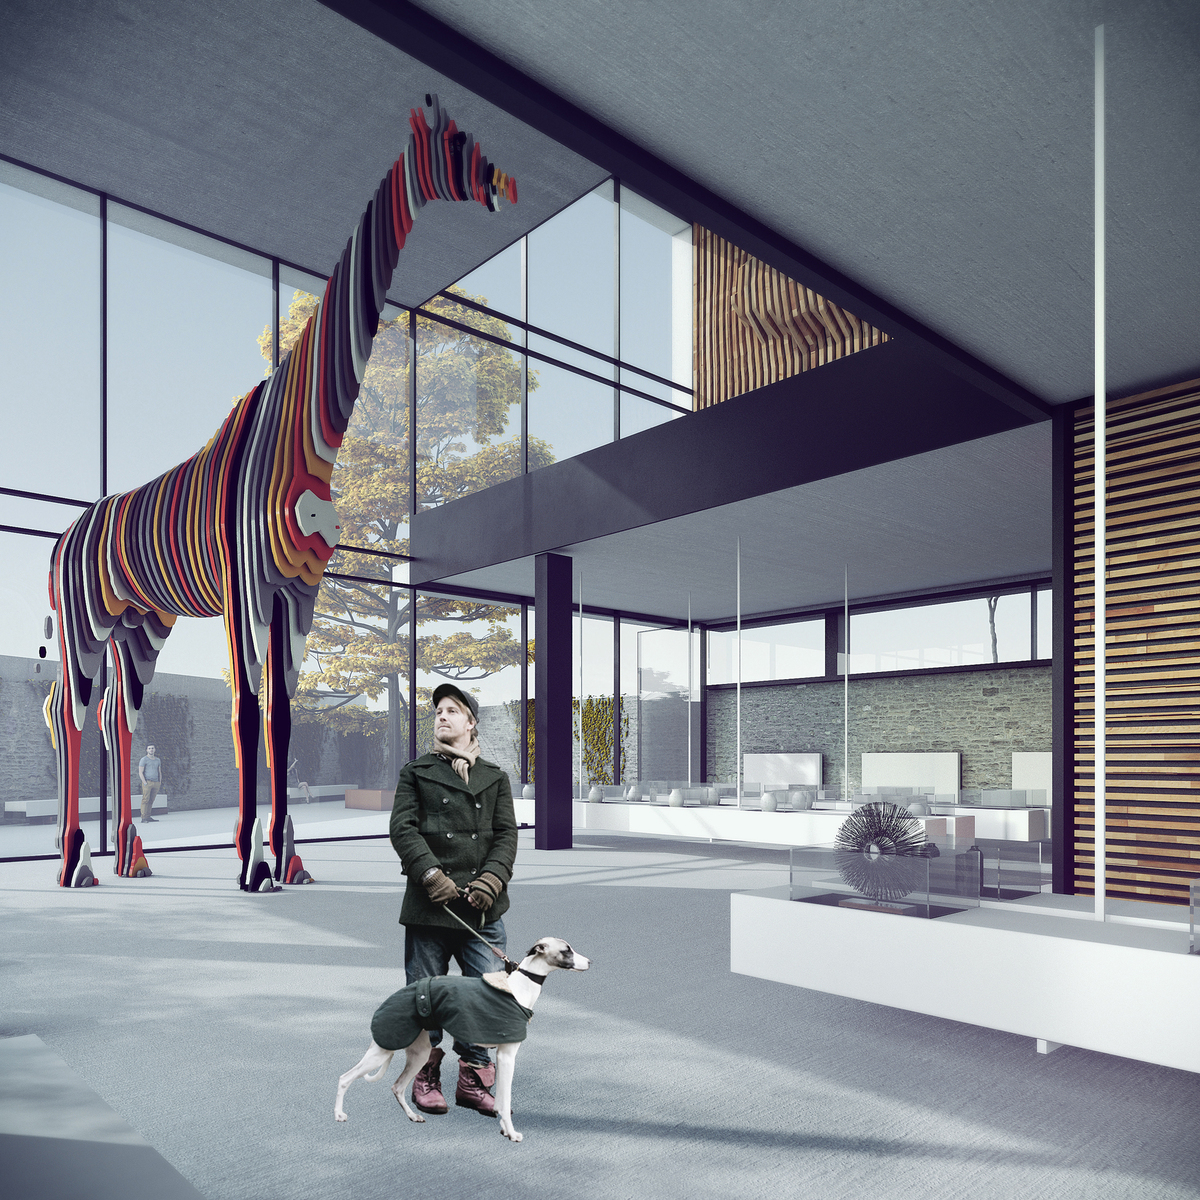 015 – PERSPECTIVE   EXHIBITION HALL - Image Courtesy of ONZ Architects